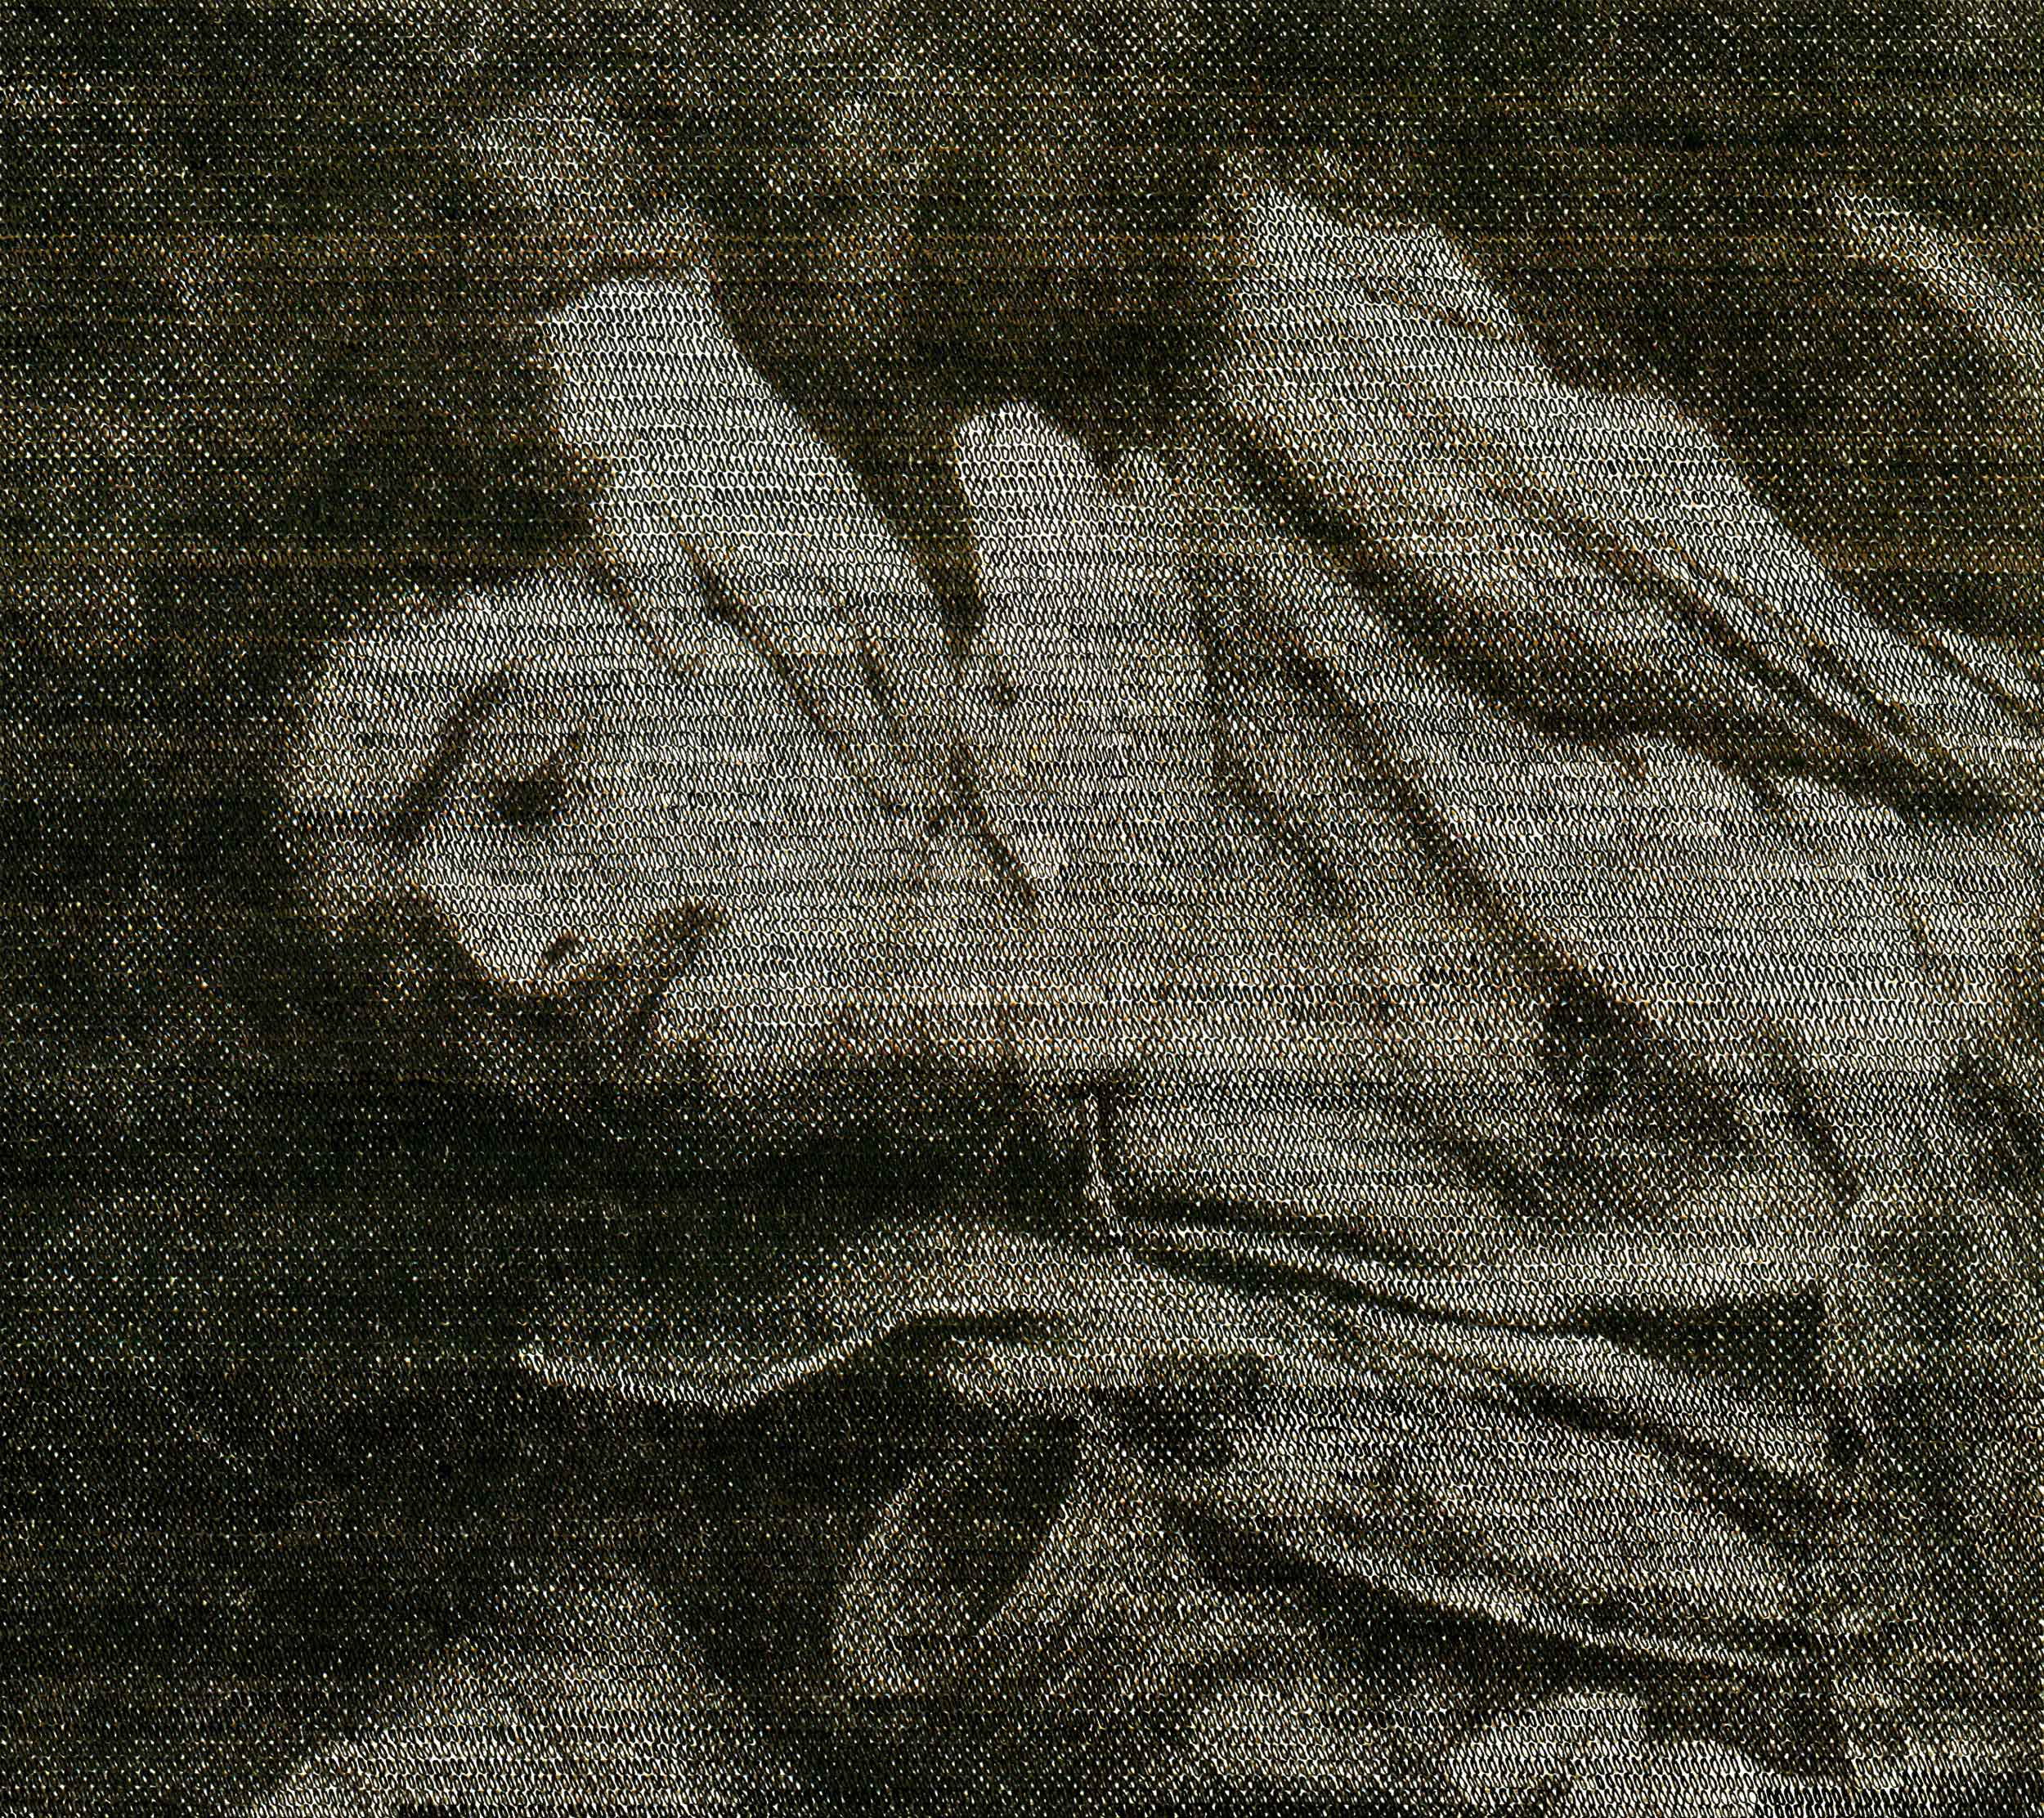 Comfort Him  (from the series Wavering Screens), inkjet print on paper from original paper collage, variable size, 2012